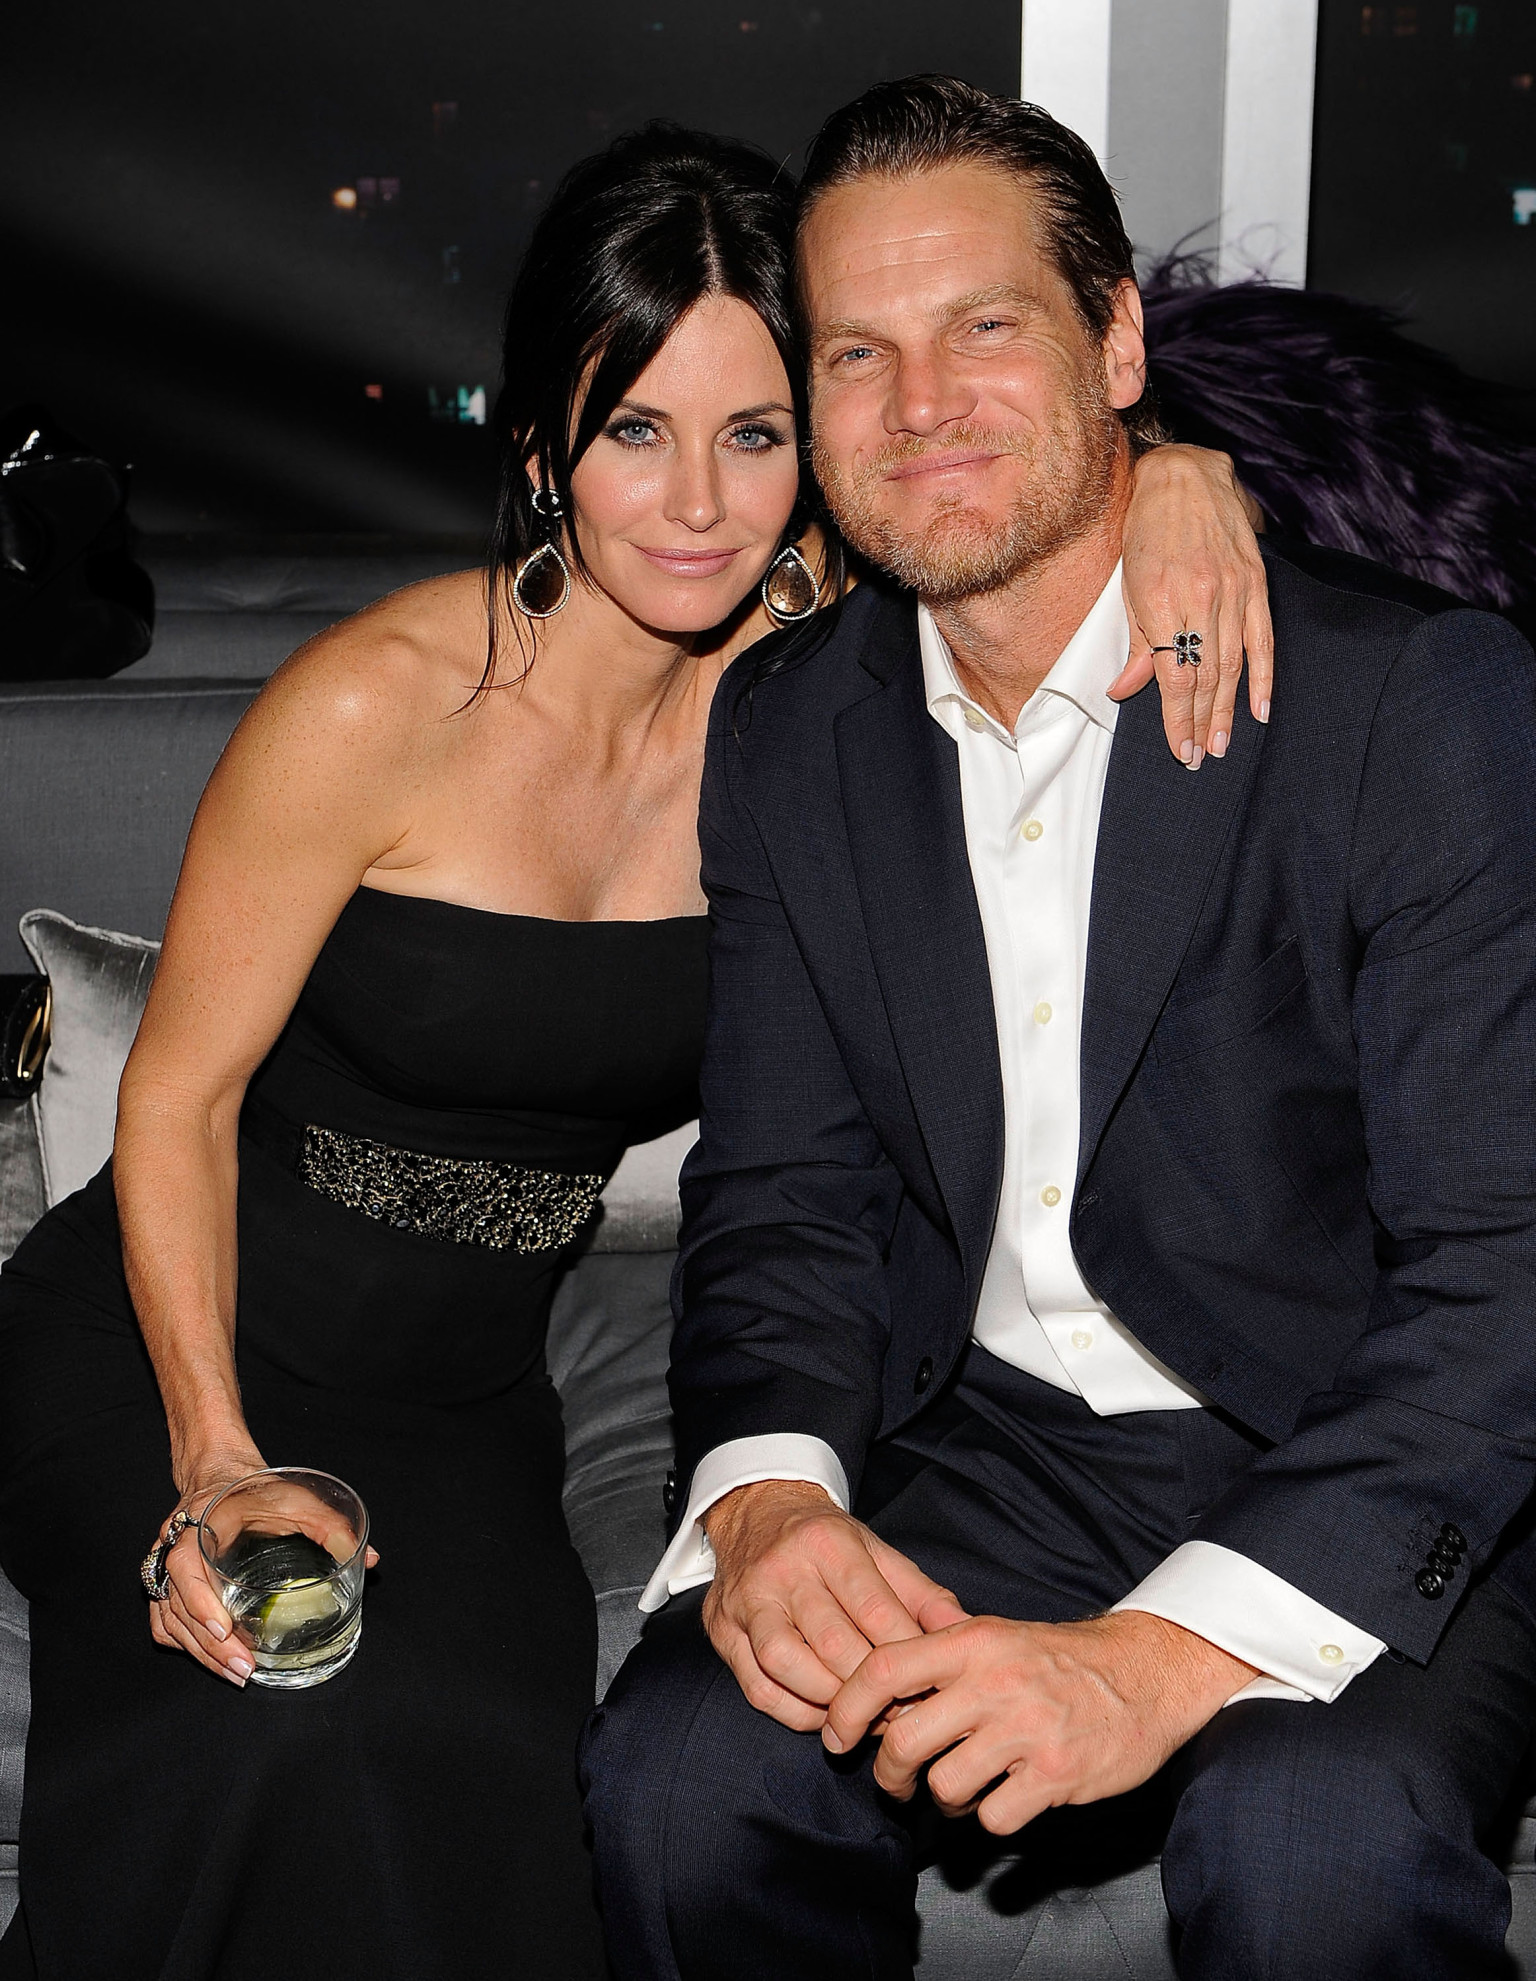 who is courteney cox dating now 2013